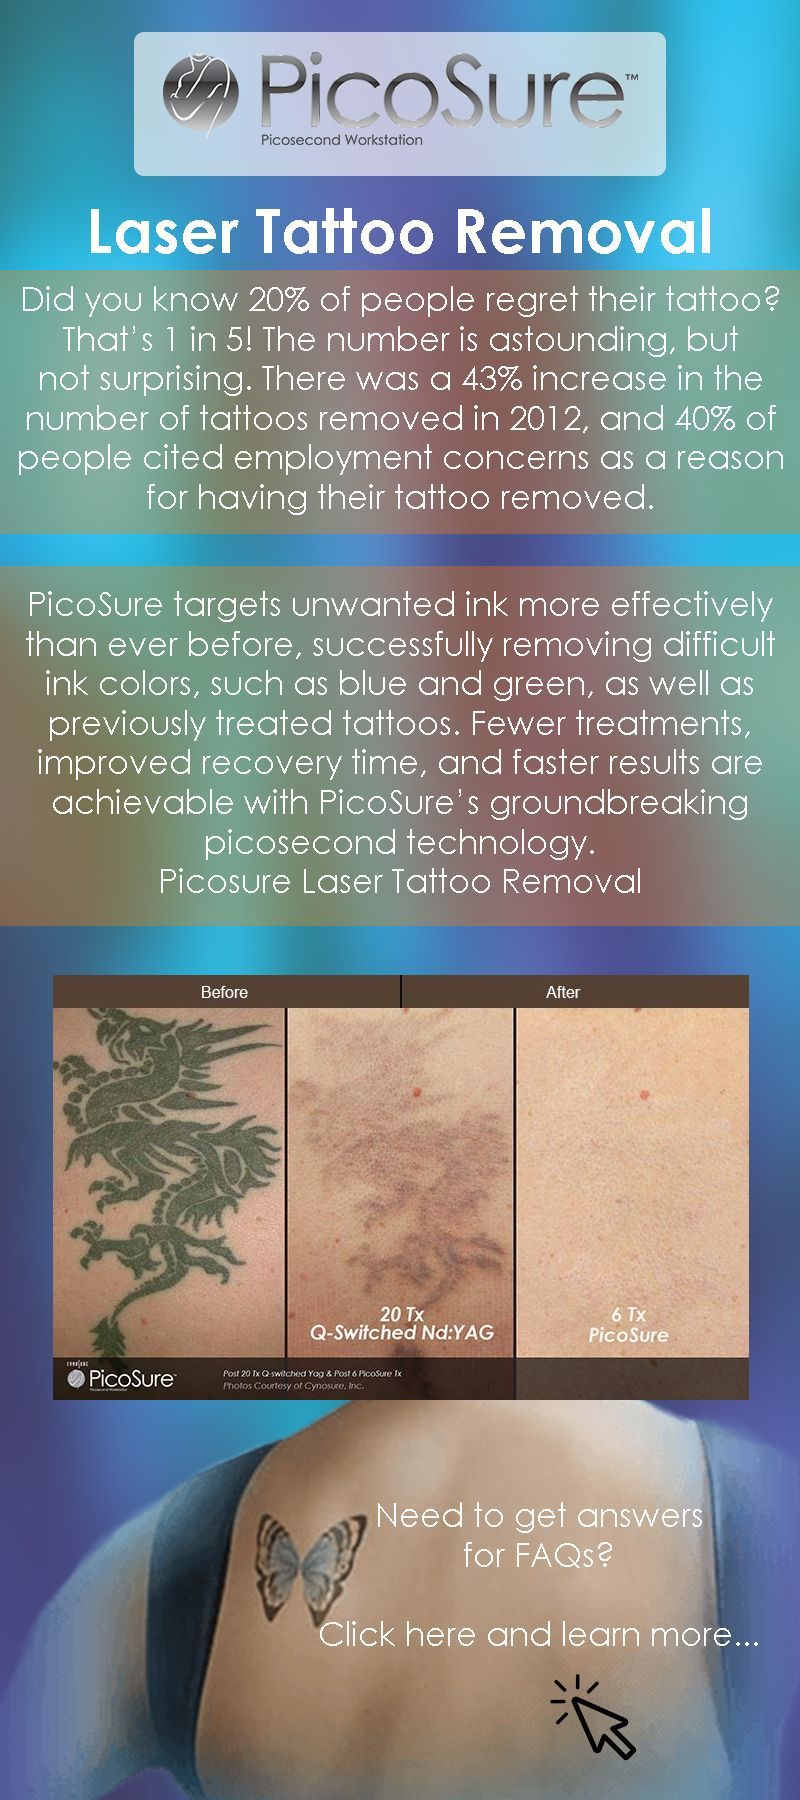 pico laser tattoo removal aftercare